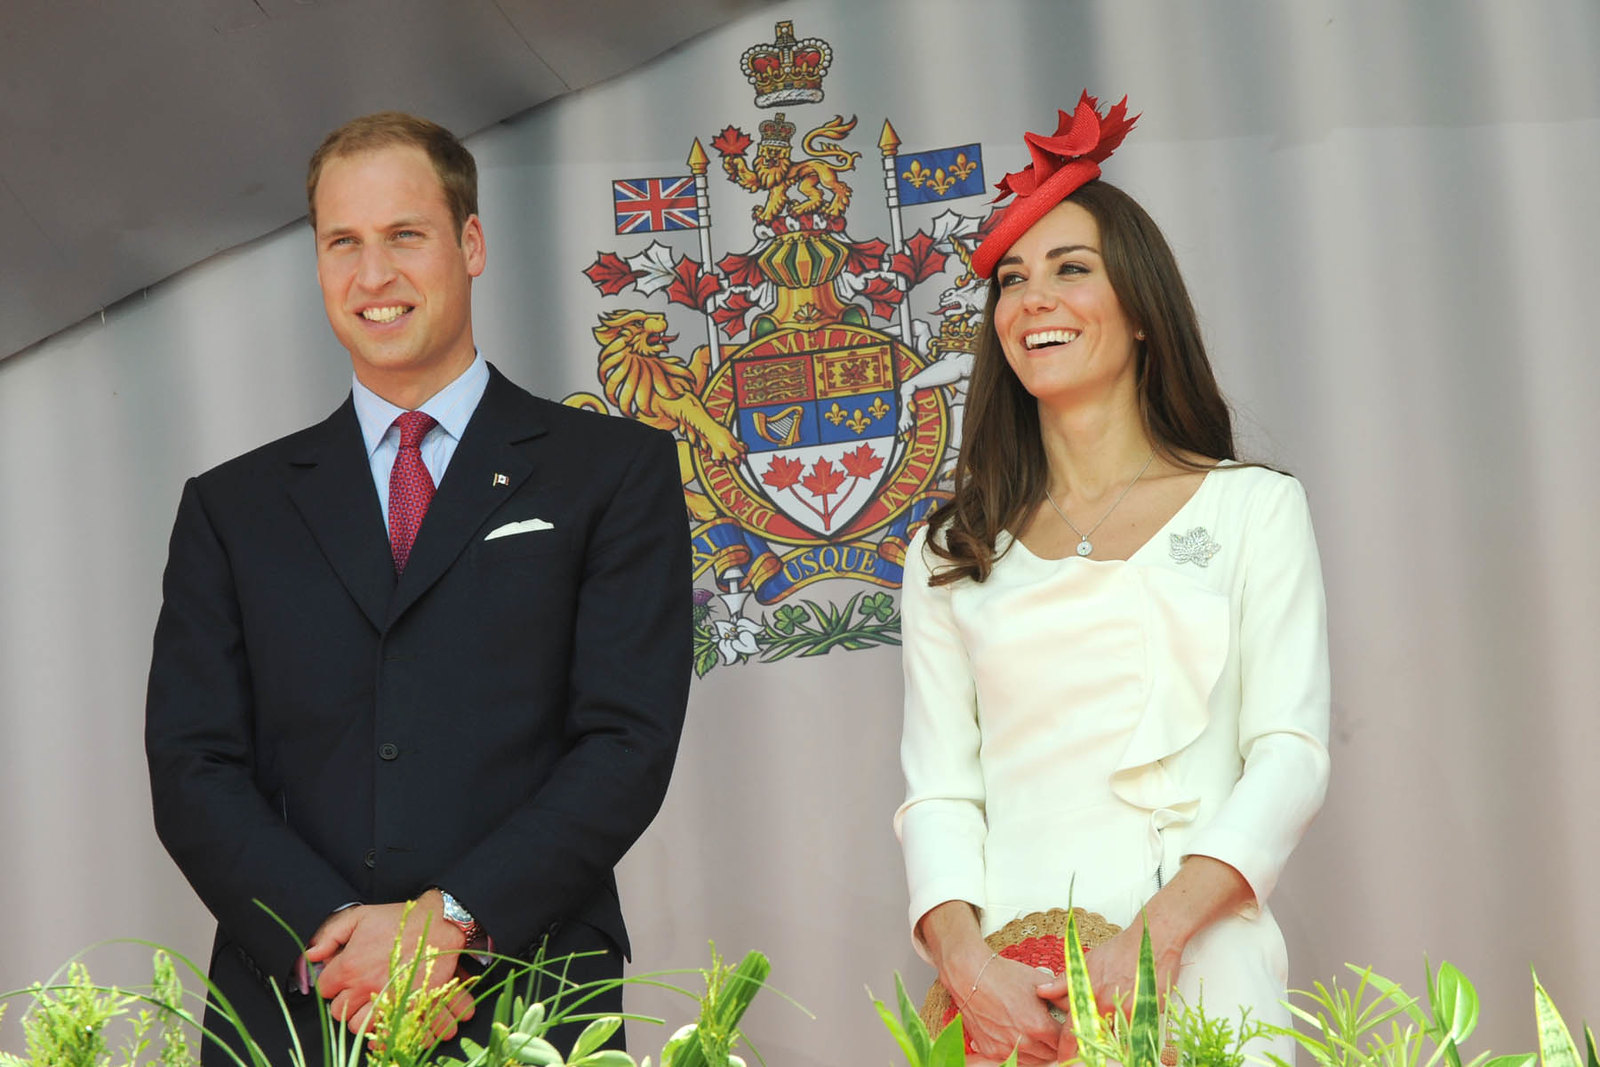 The Duke and Duchess of Cambridge attended a Noon show on Canada Day during Royal tour of Canada in 2011